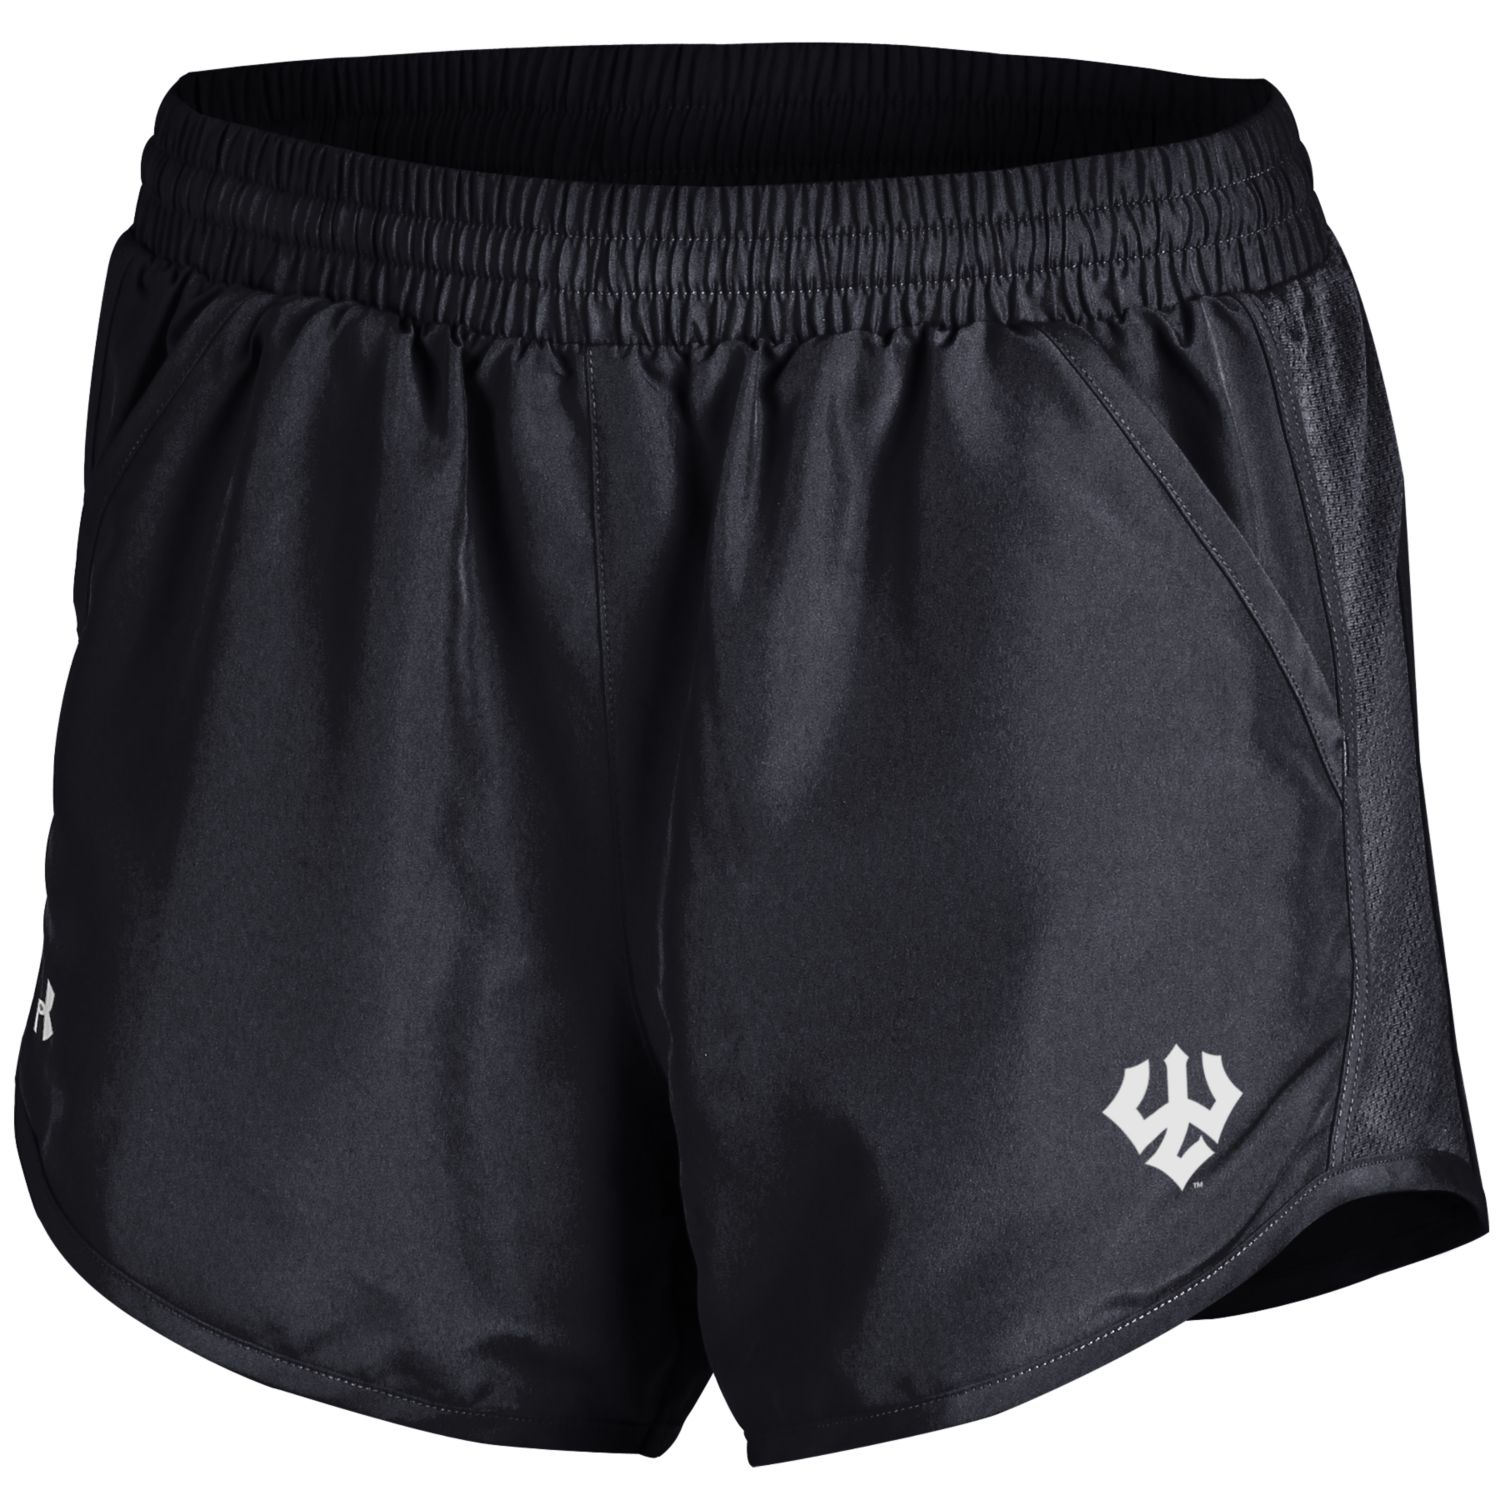 Under Armour Fly Short, Black or Grey